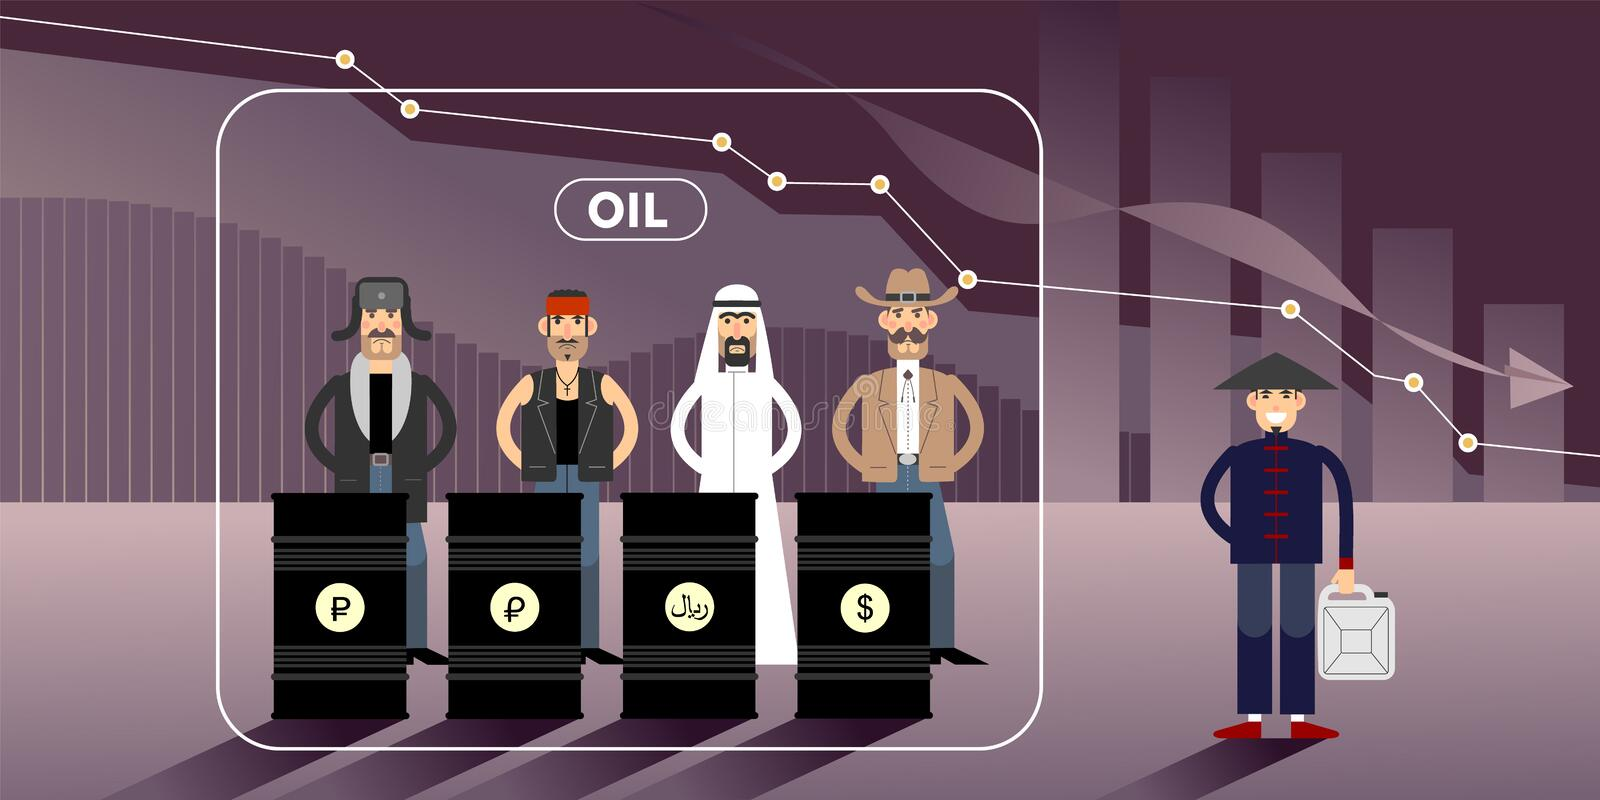 Oil price chart illustration with personages. Chart of falling oil prices with different national character personages royalty free illustration